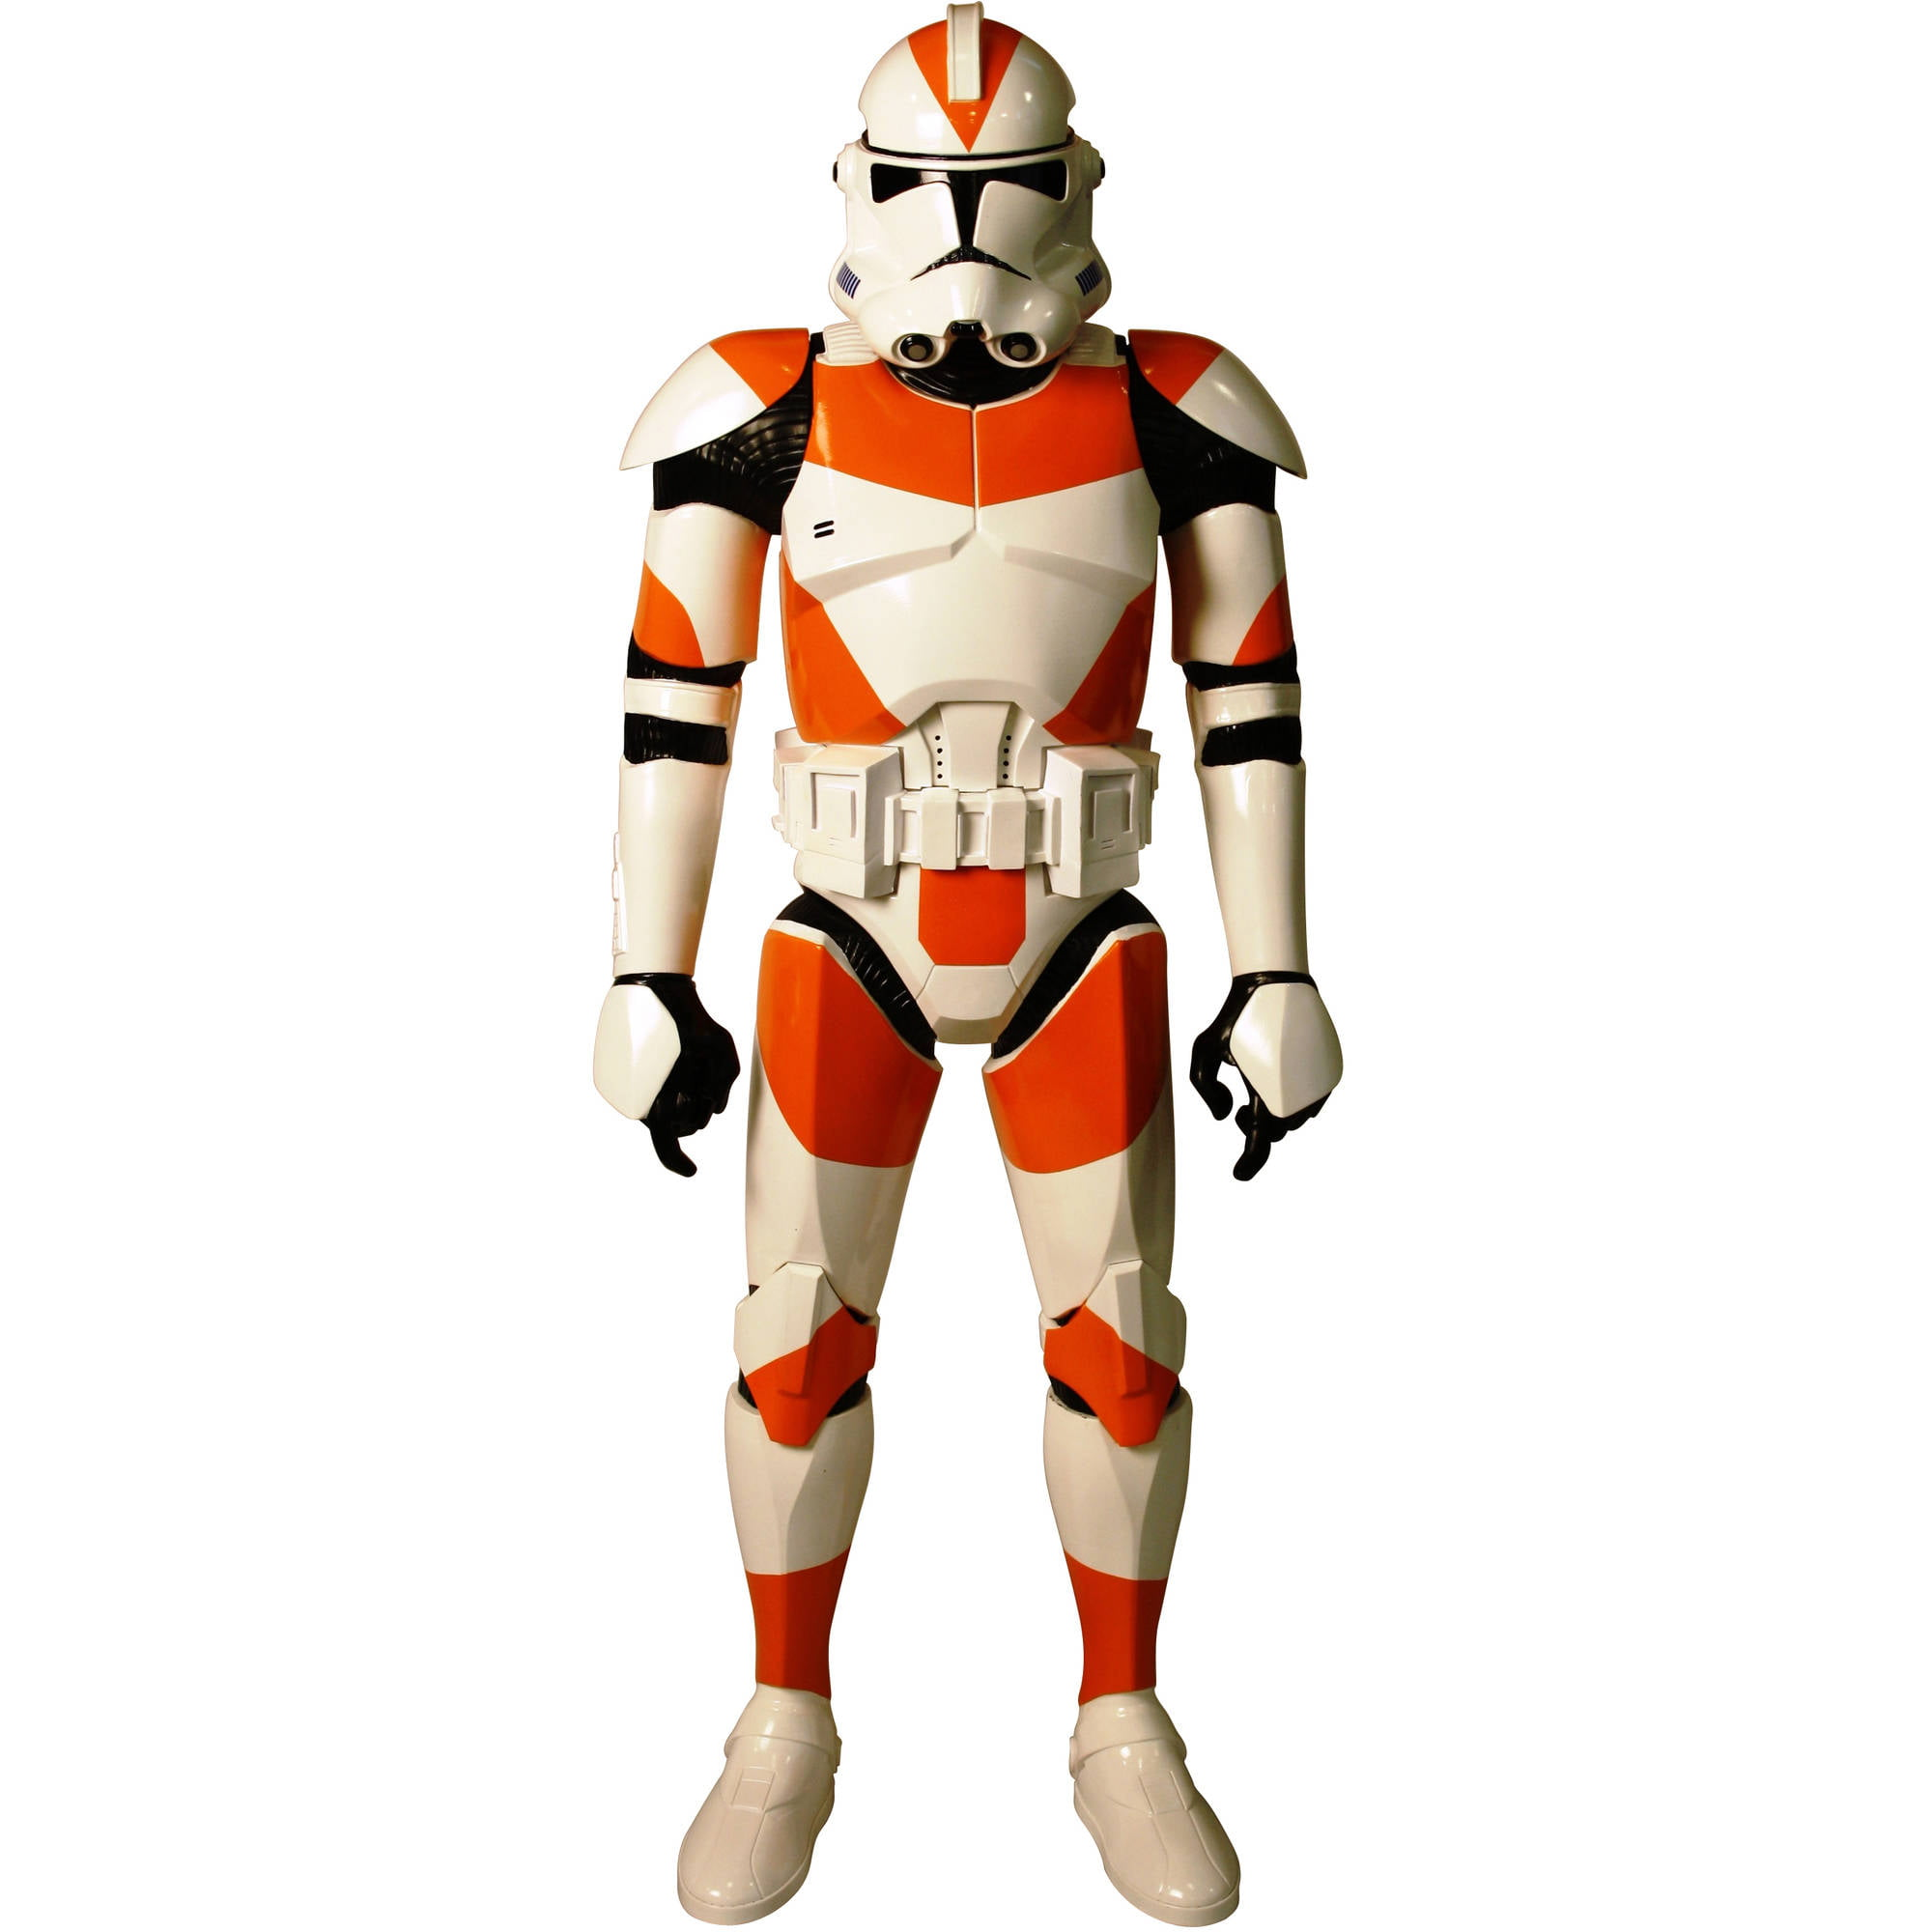 "Star Wars Orange Utapau Clone Trooper Giant 31"" Action Figure by Jakks Pacific"